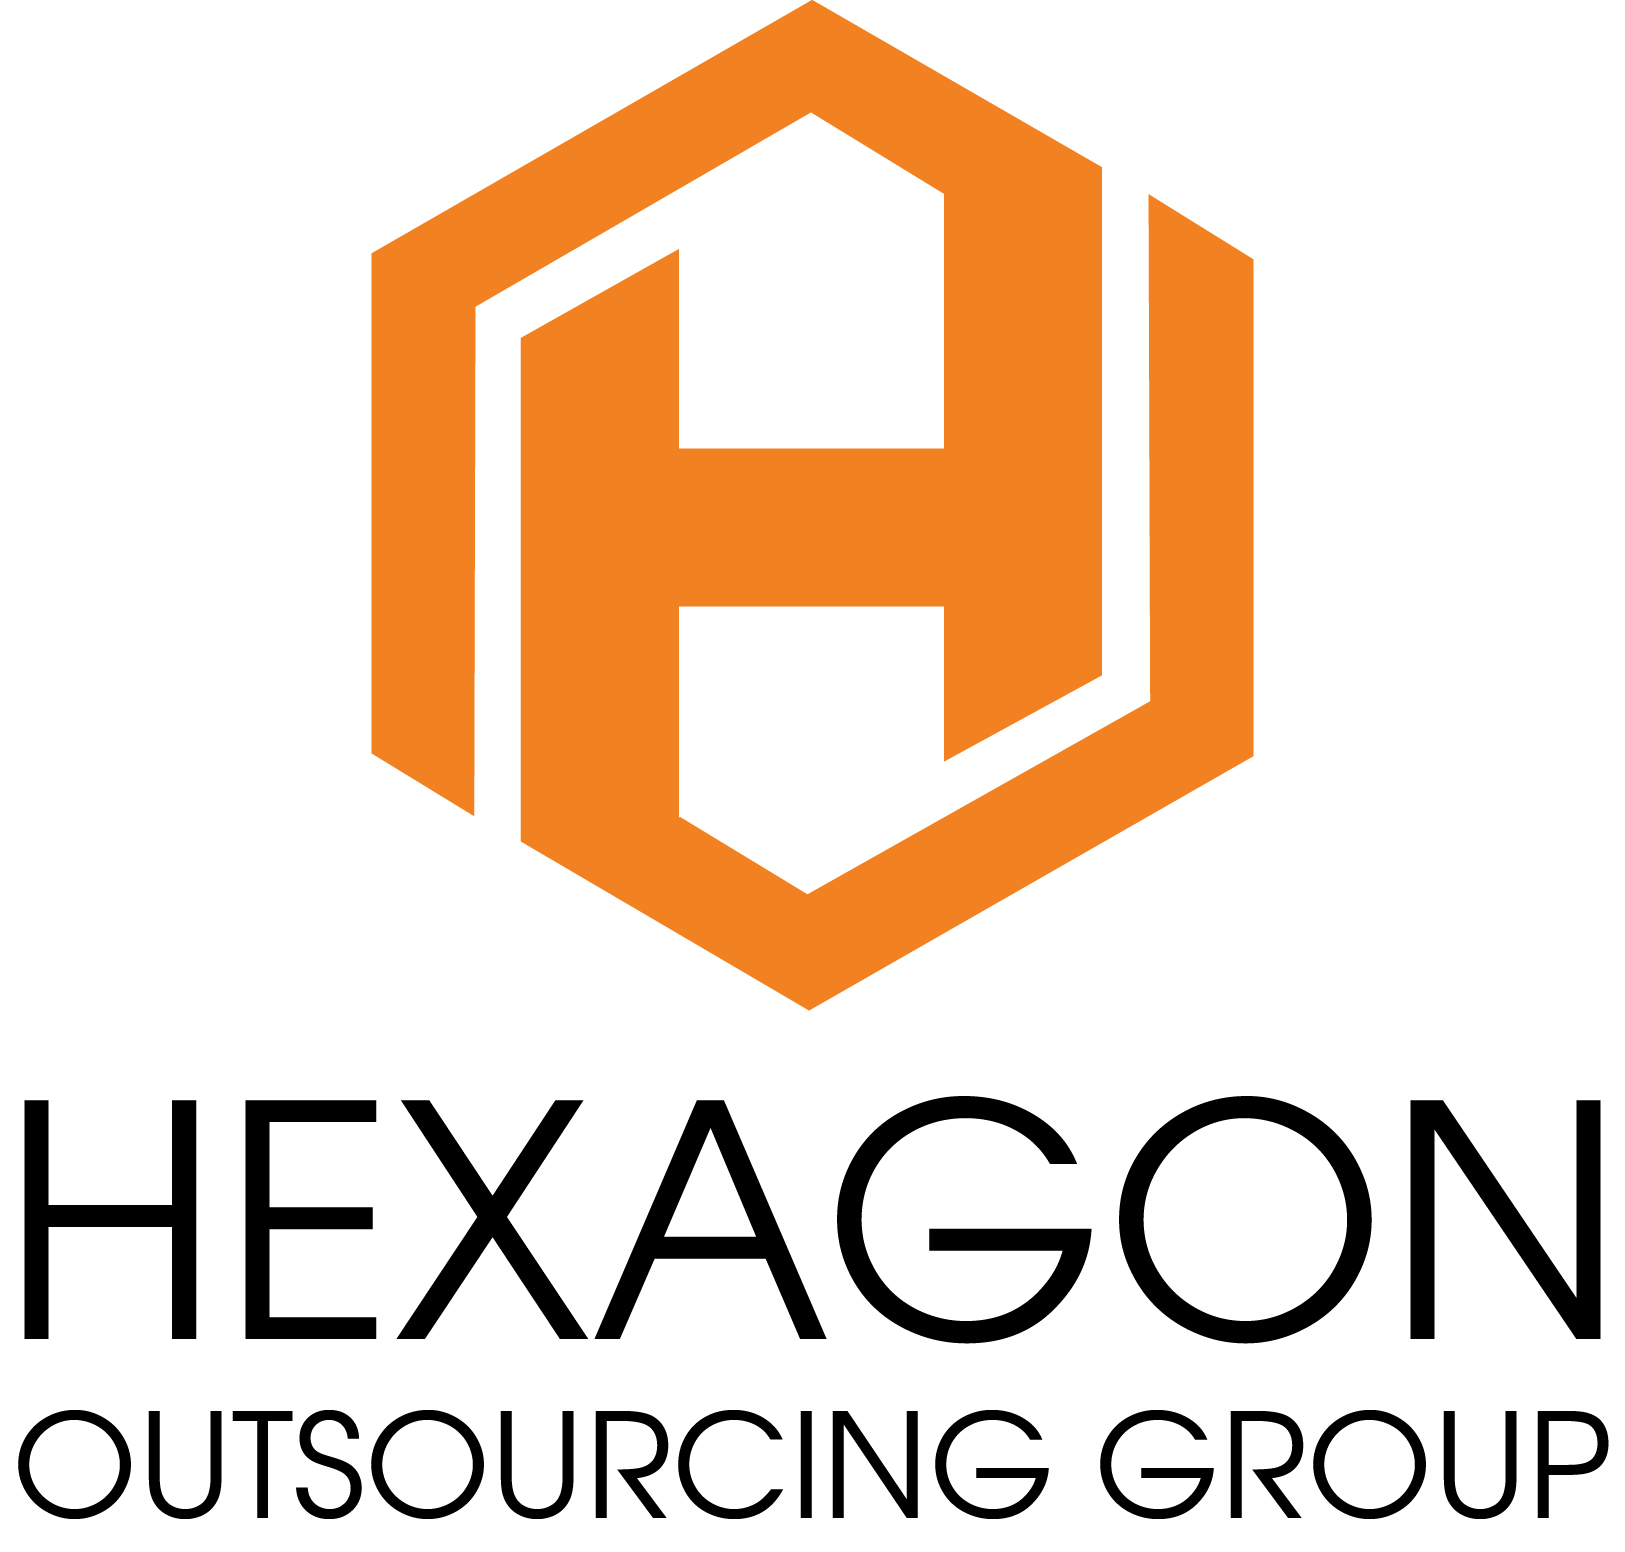 Hexagon Outsourcing Group - Black Owned